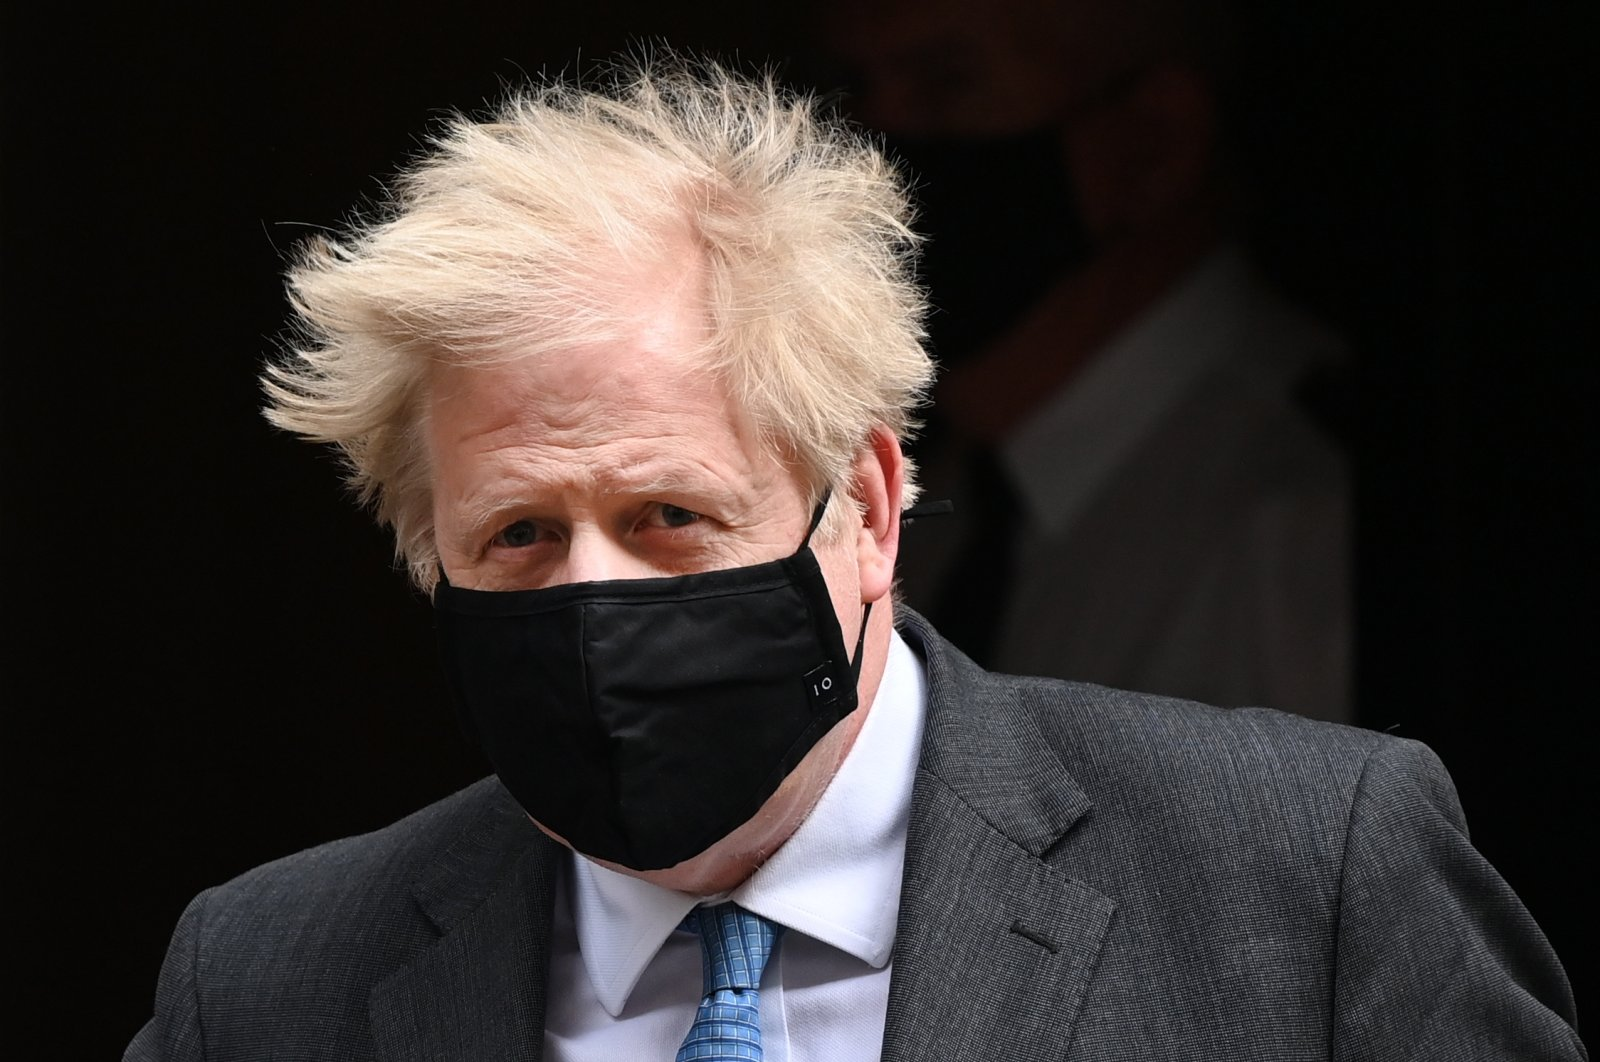 British Prime Minister Boris Johnson departs 10 Downing Street for Prime Minister's Questions at parliament in London, Britain, April 28, 2021. (EPA Photo)